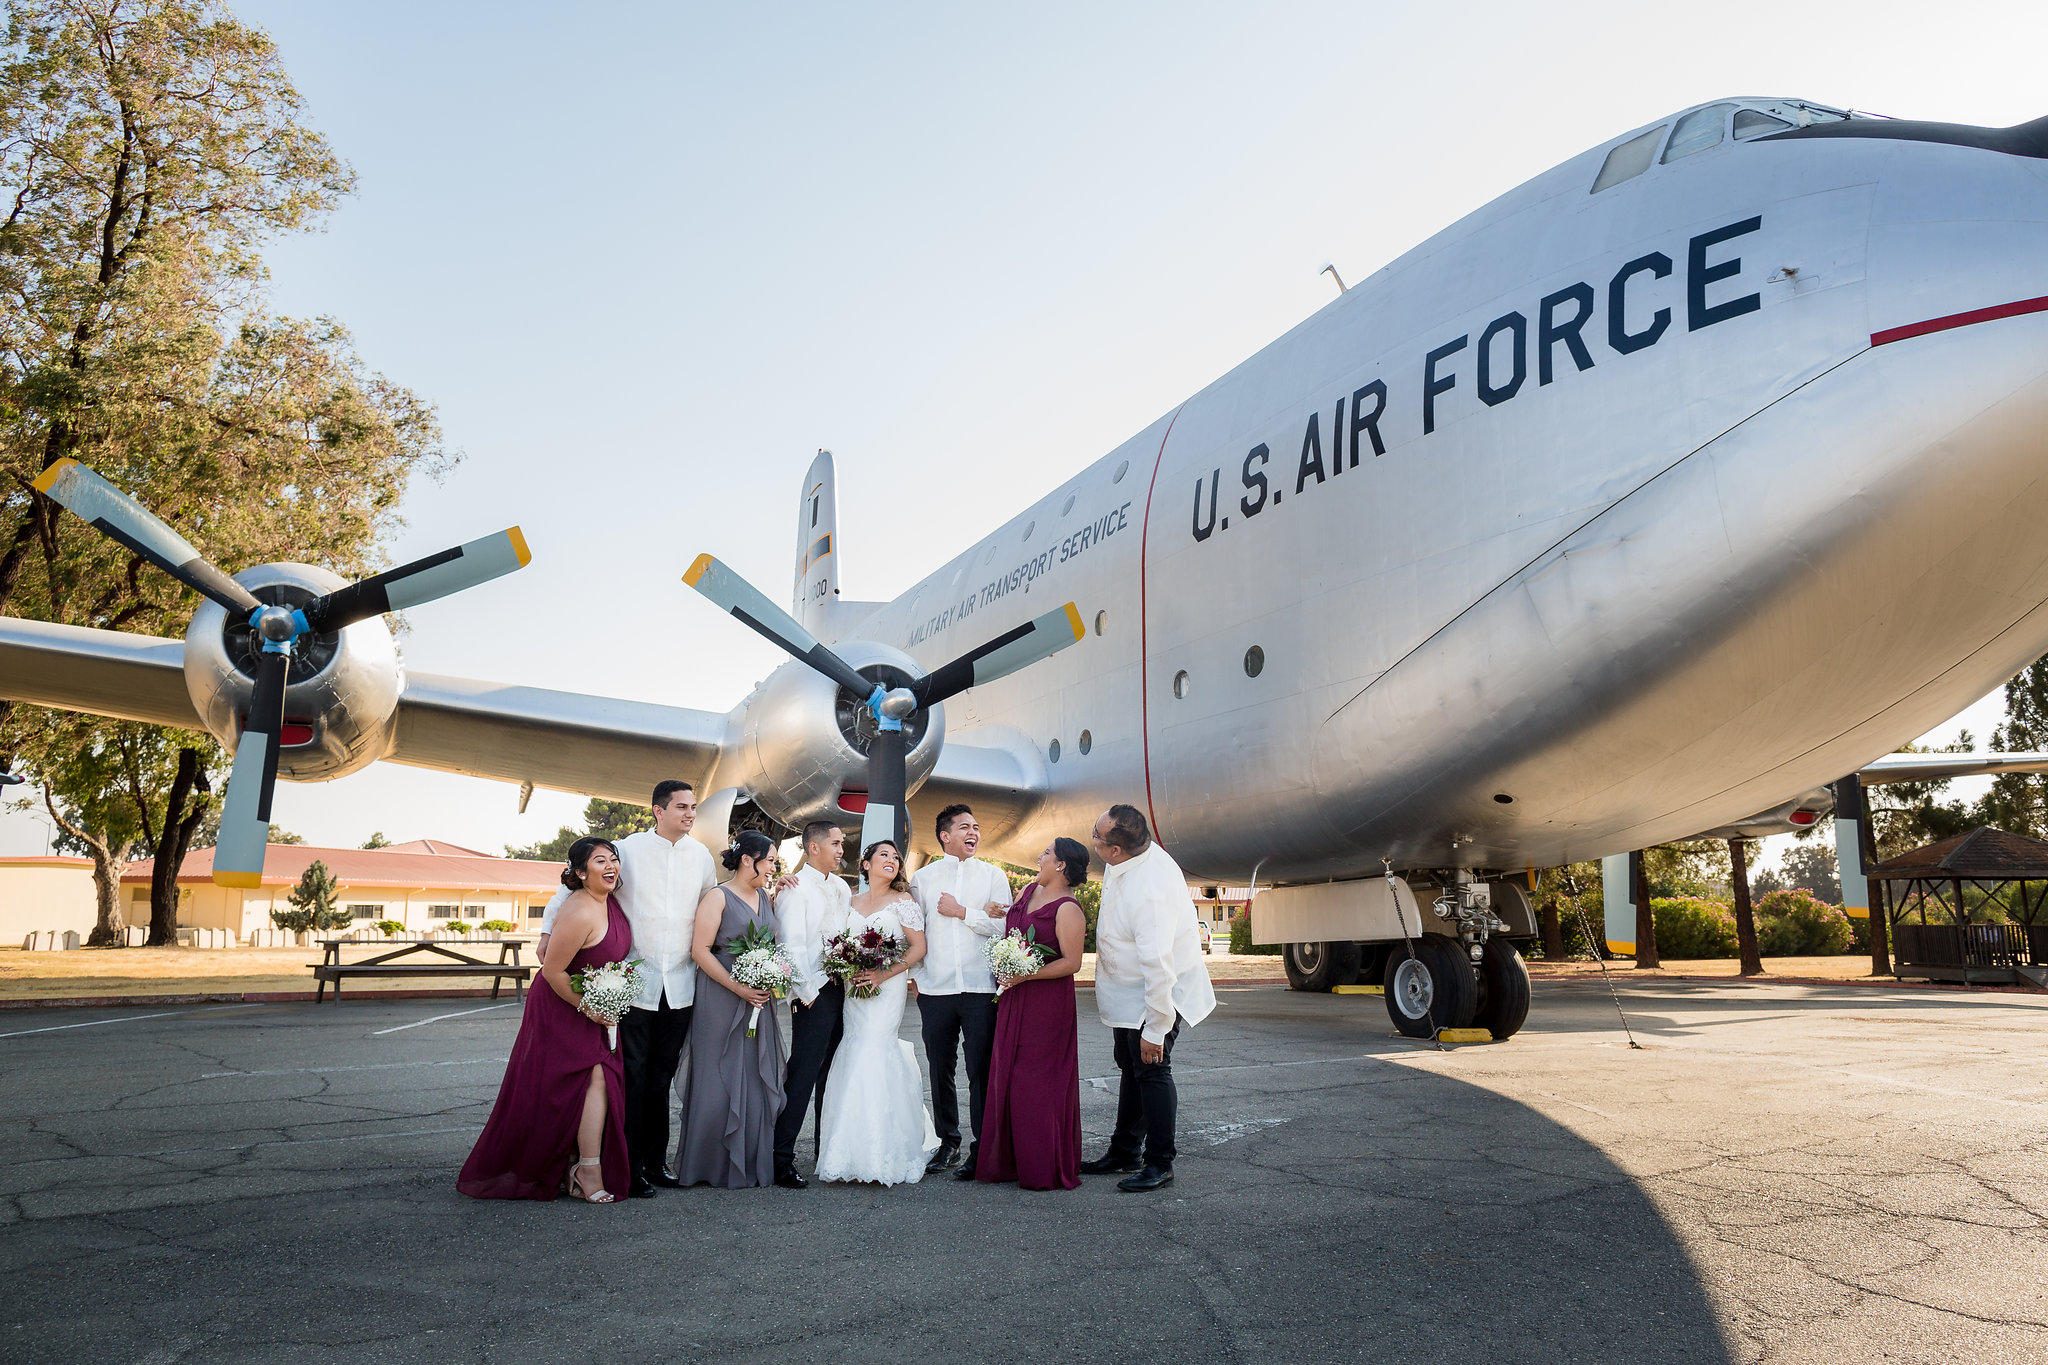 travis air force base wedding-12.jpg